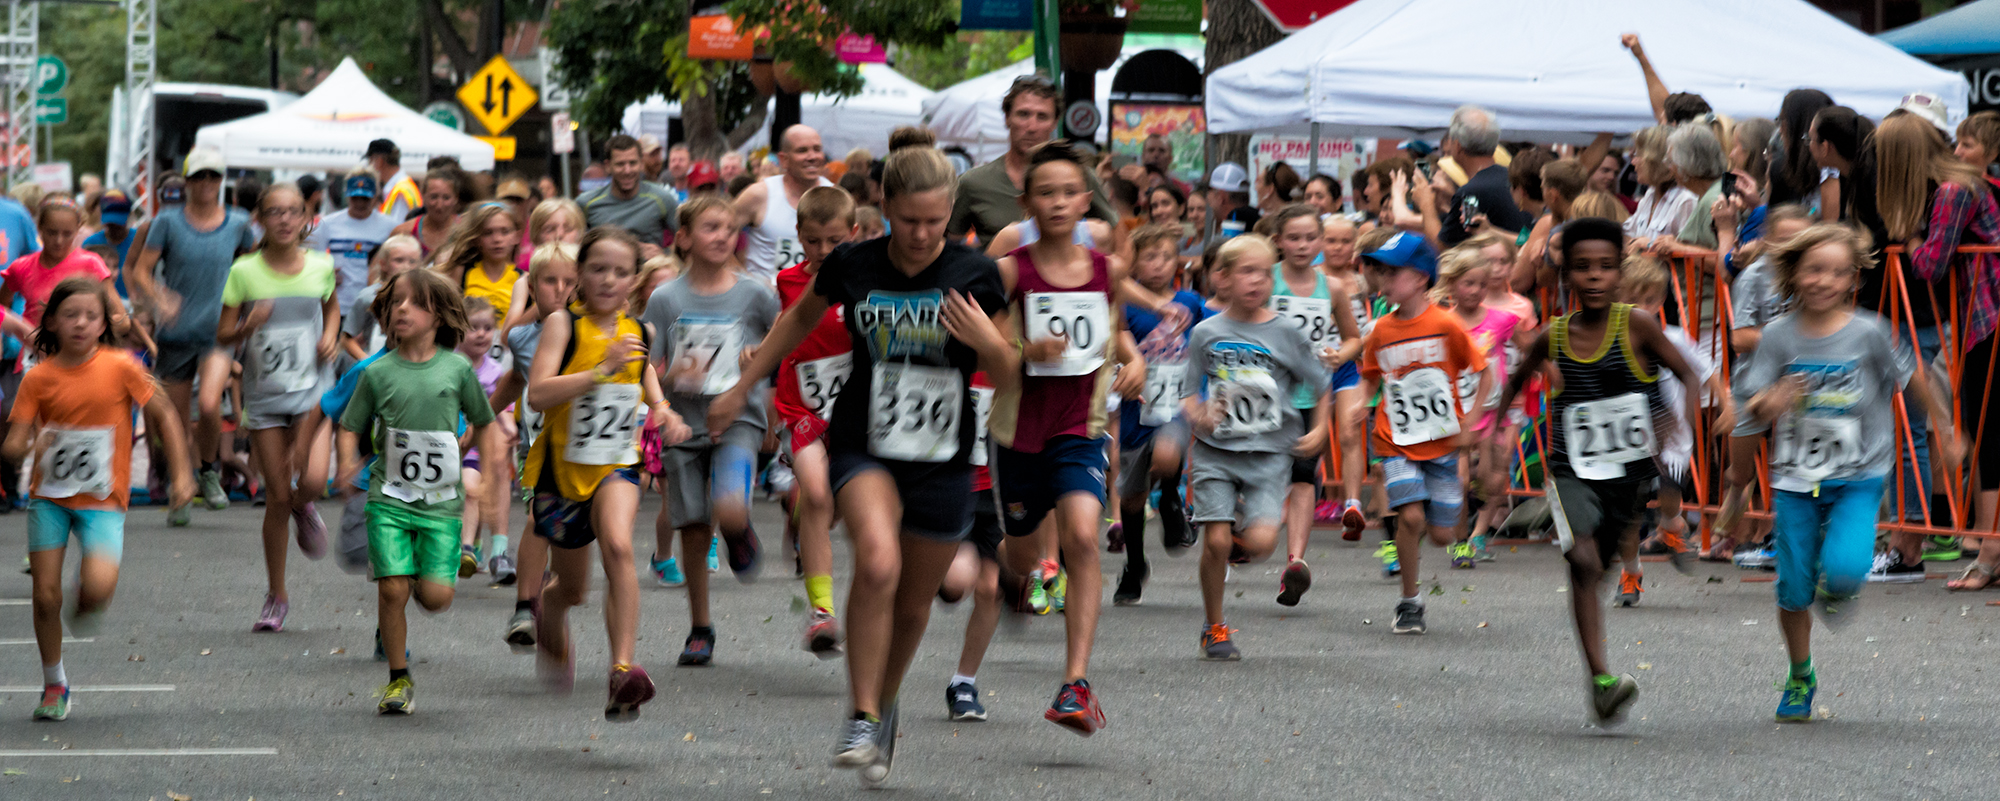 The Kids Race, Pearl Street Mile. Boulder, Colorado, 2016